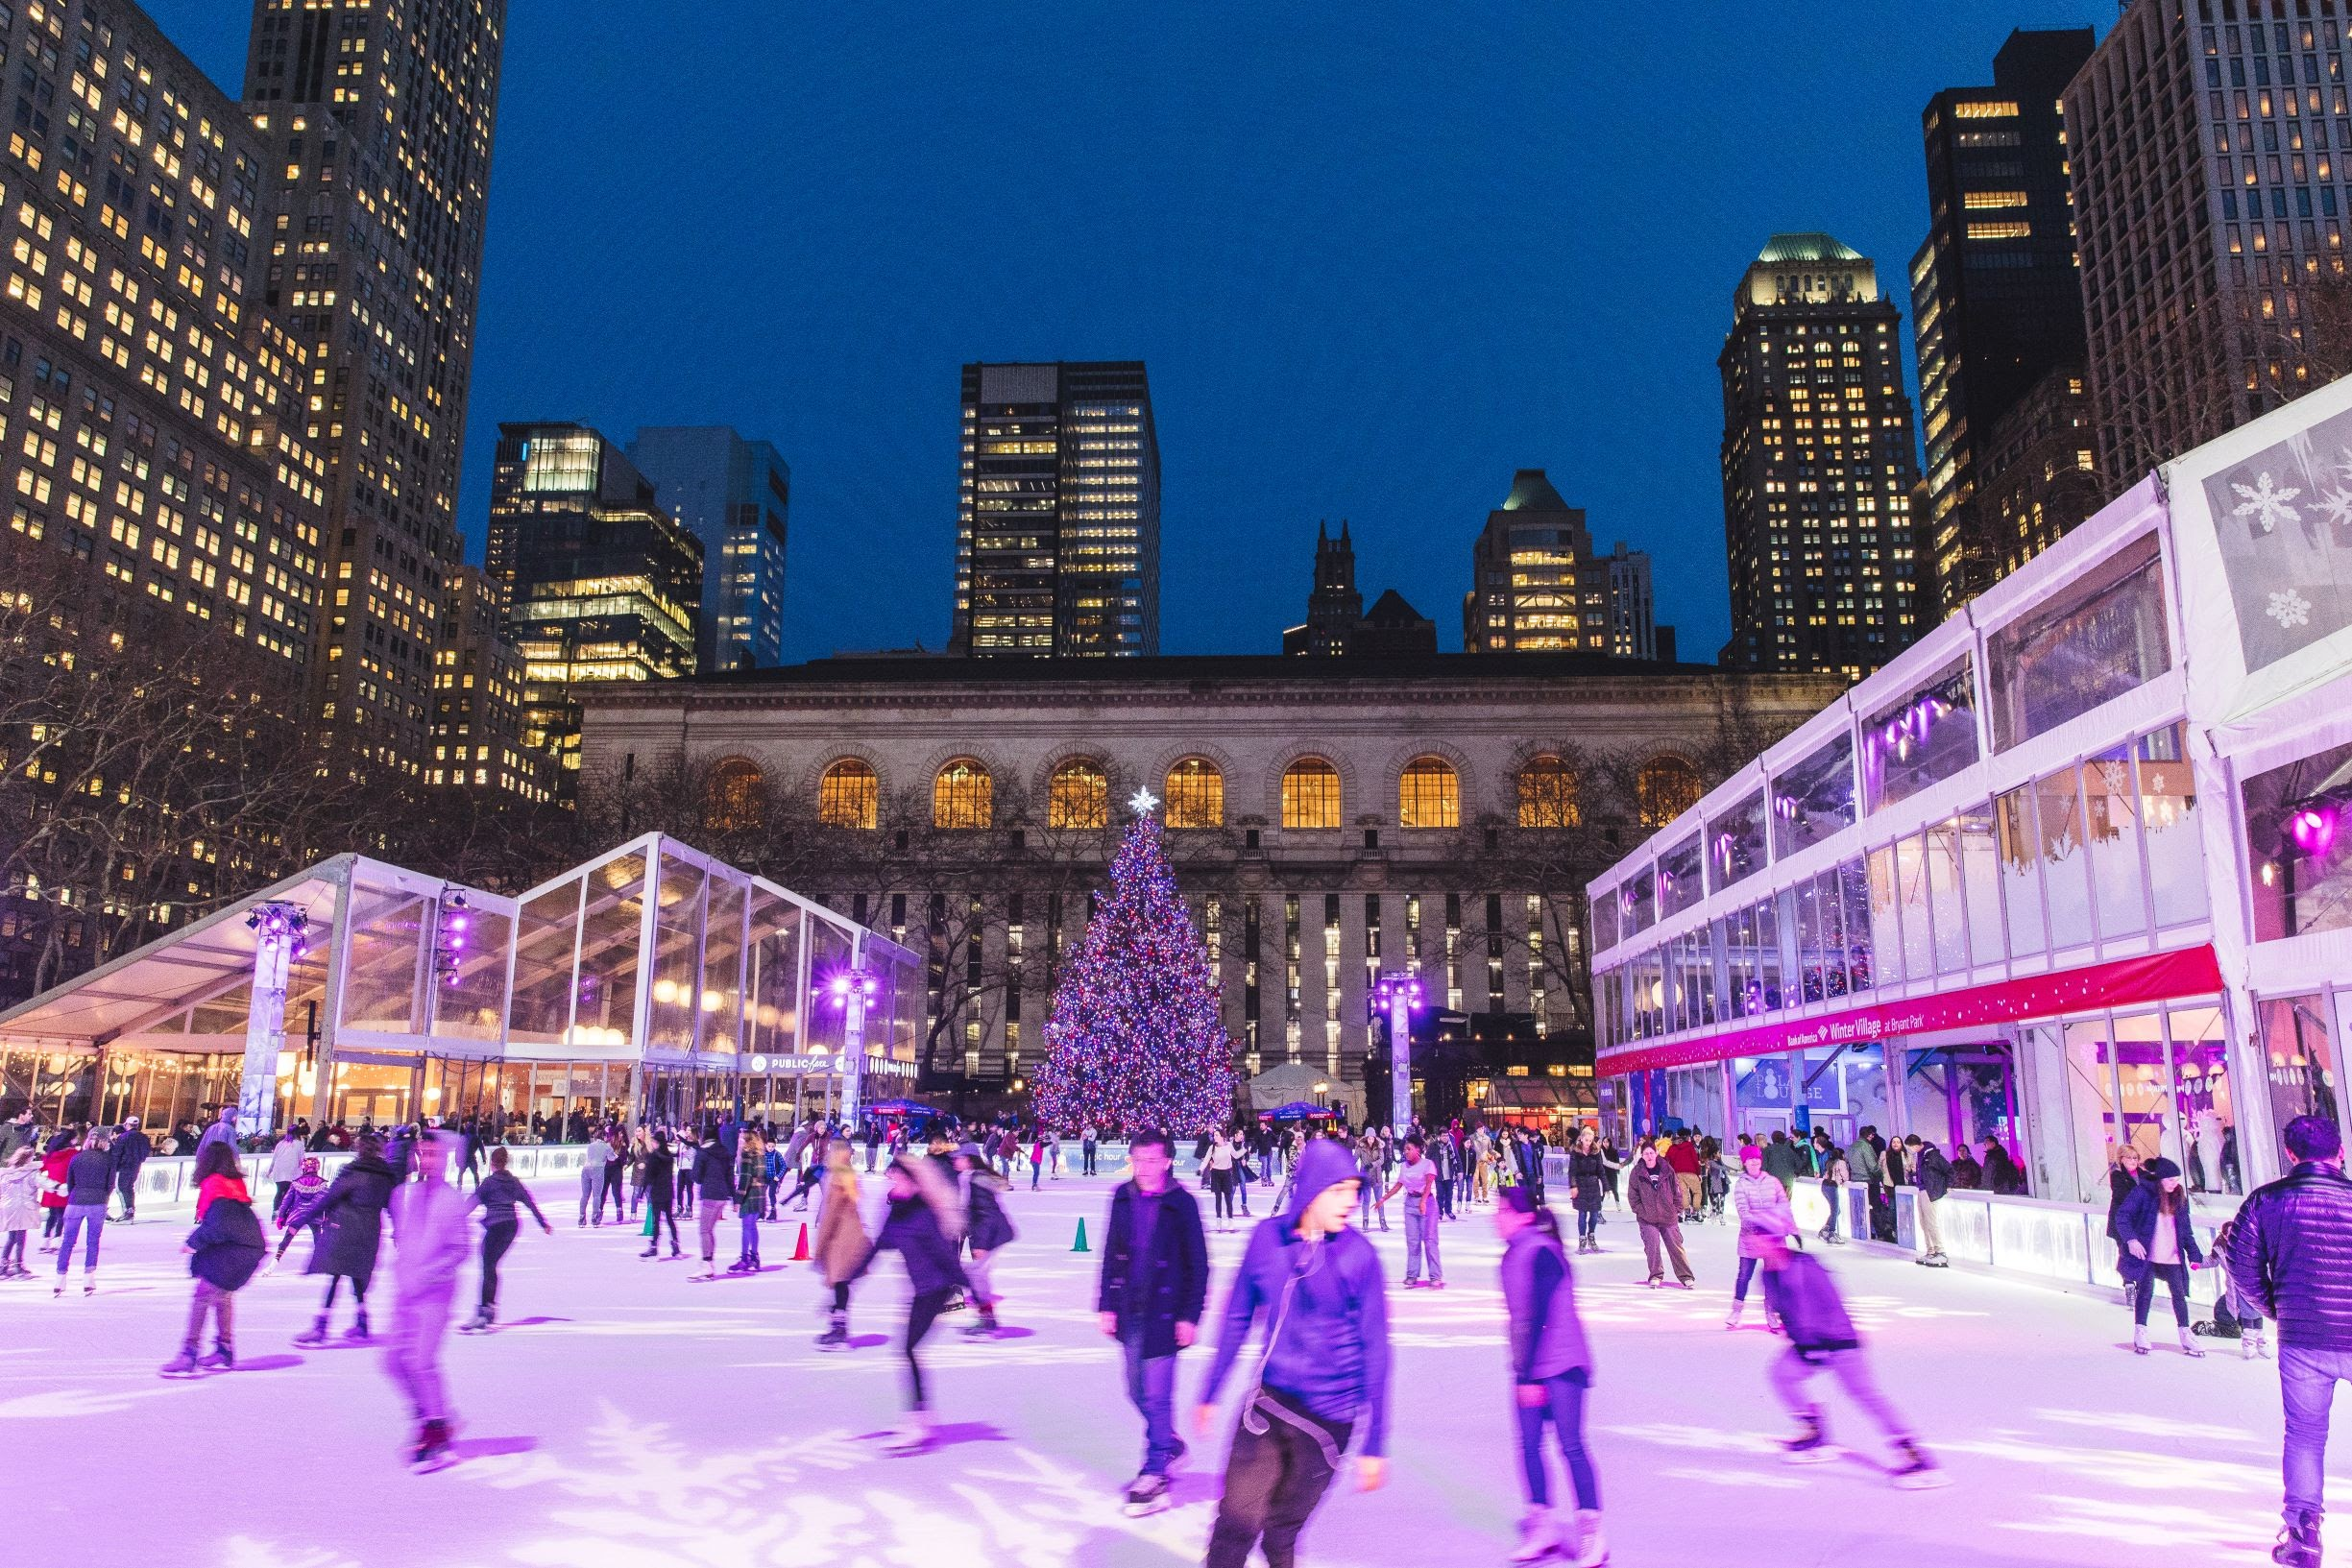 Ice skaters on the Winter Village rink in Bryant Park in the evening